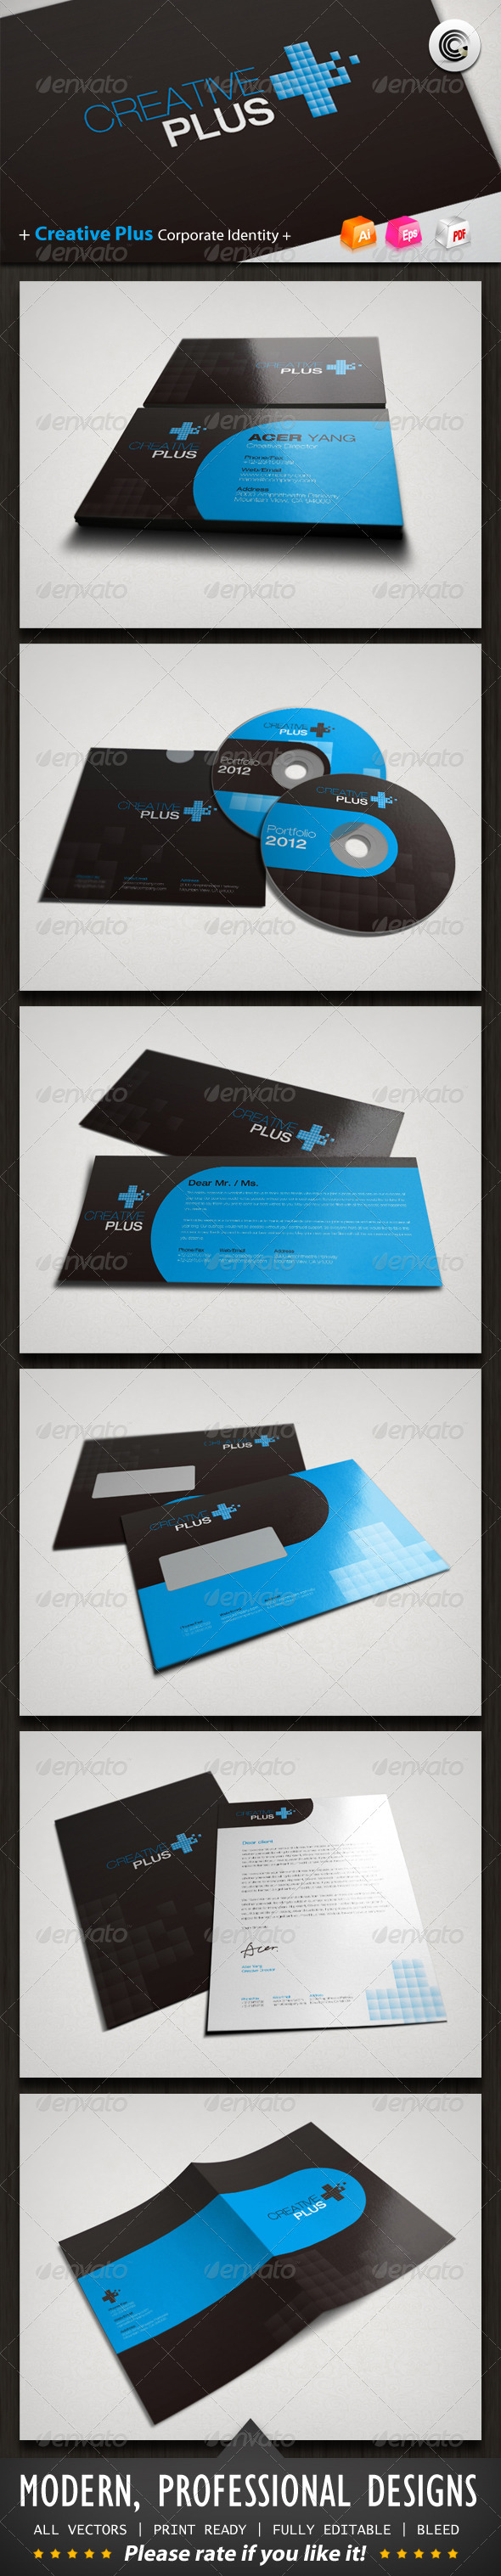 Creative Plus Corporate Identity - Stationery Print Templates